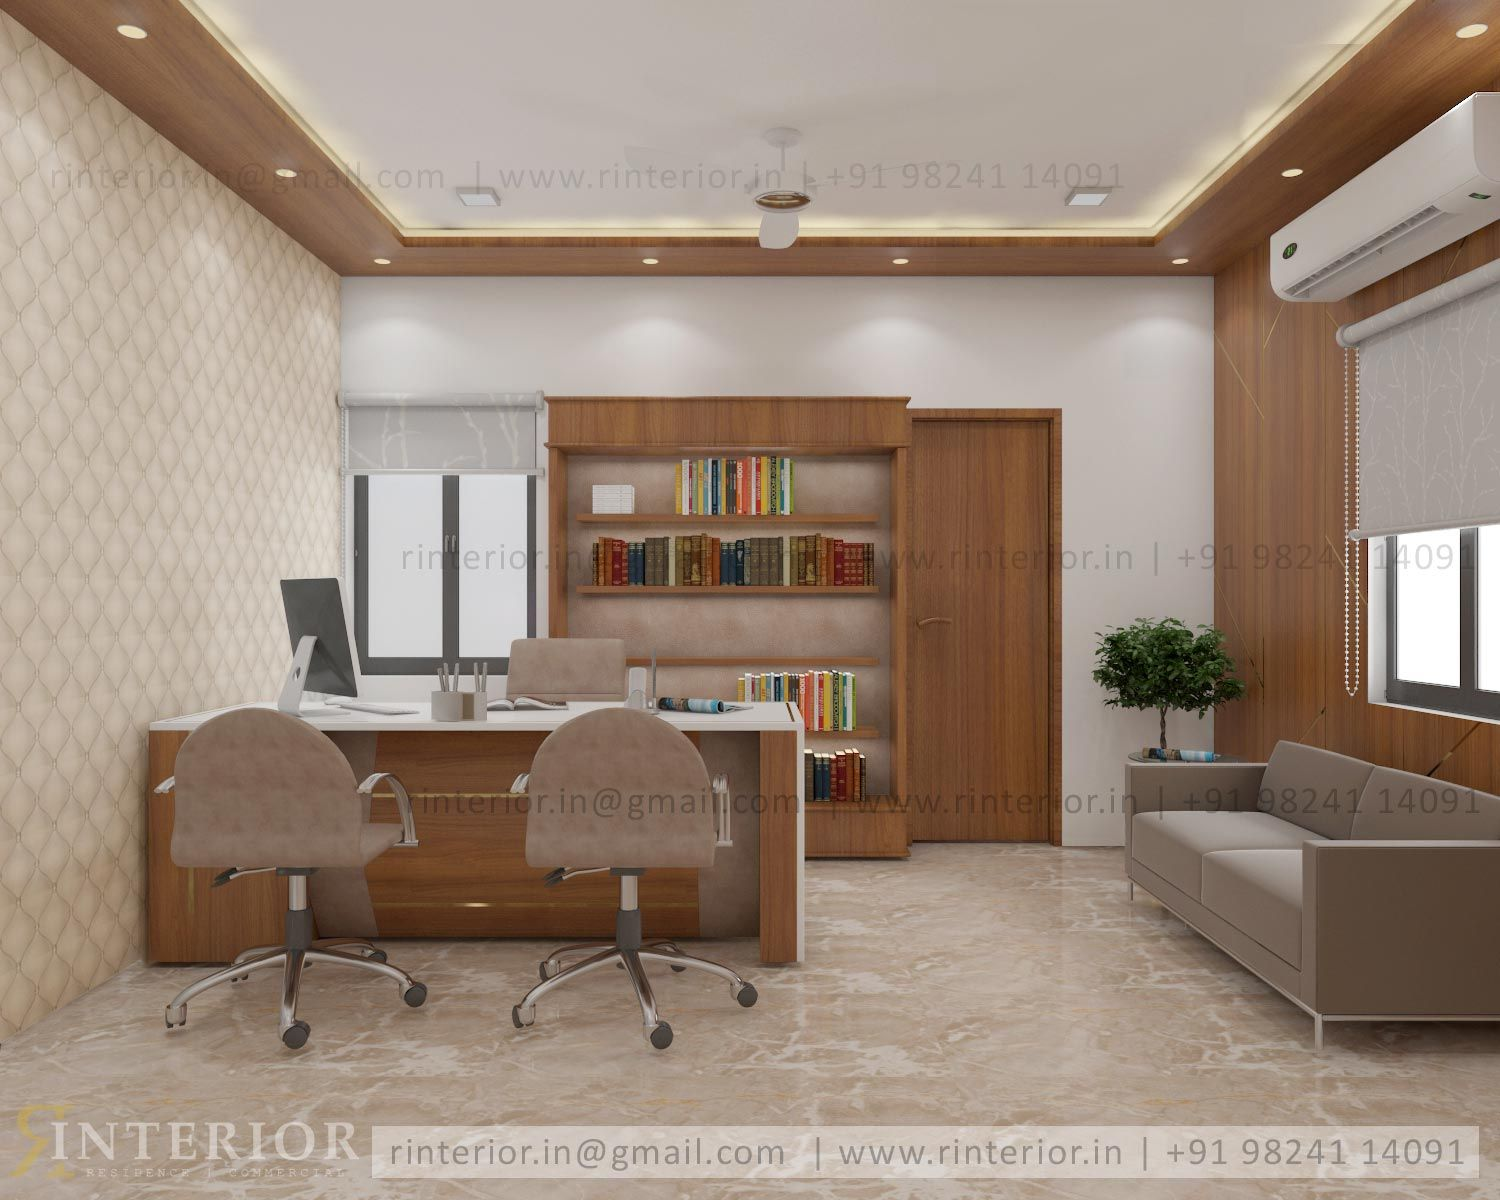 Rinterior Best Commercial Interior Design Services In Ahmedabad